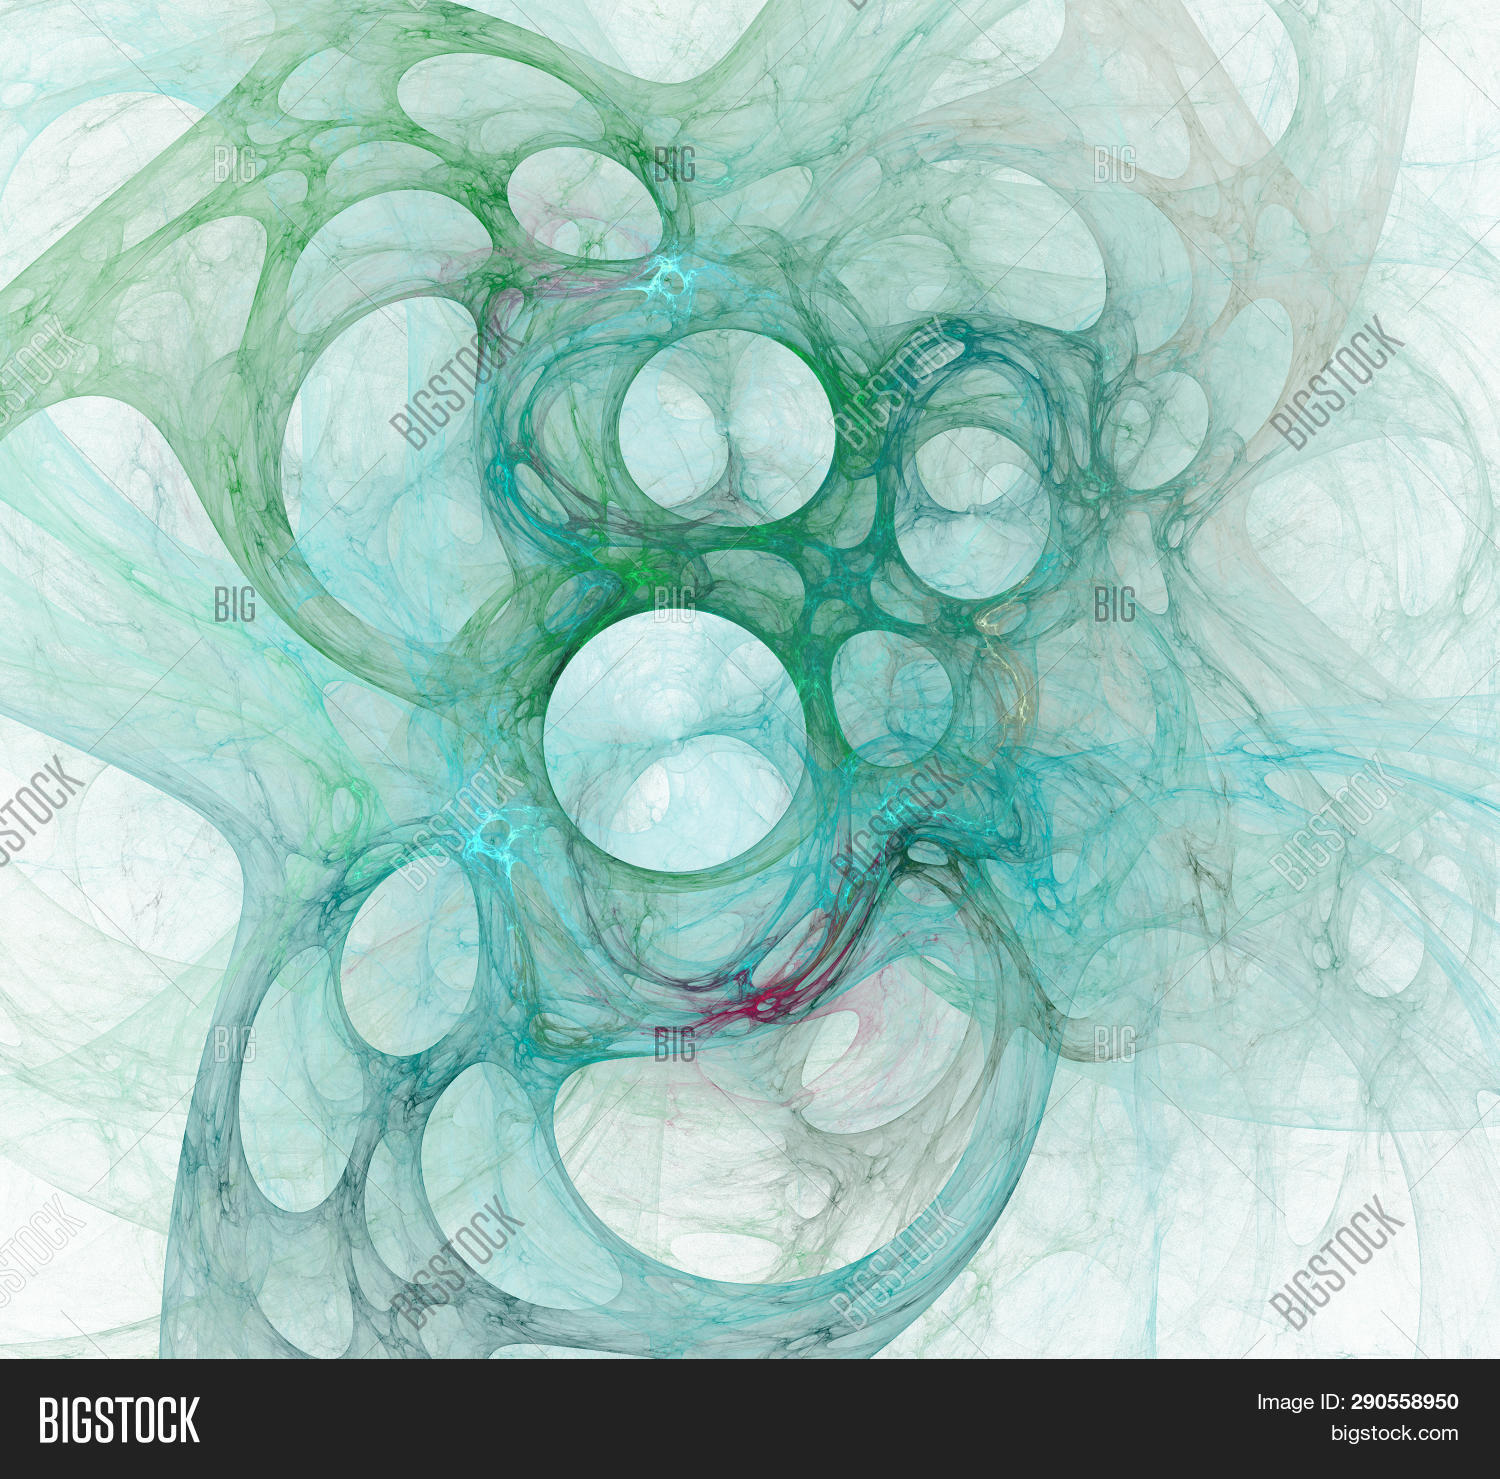 abstract,abstraction,art,artistic,backdrop,background,beautiful,bright,color,concept,creative,decorative,design,digital,dynamic,effect,elegant,energy,fantasy,flame,floral,form,fractal,frame,future,generated,glow,graphic,illustration,motion,ornament,power,science,shape,shiny,space,spiral,style,swirl,technology,texture